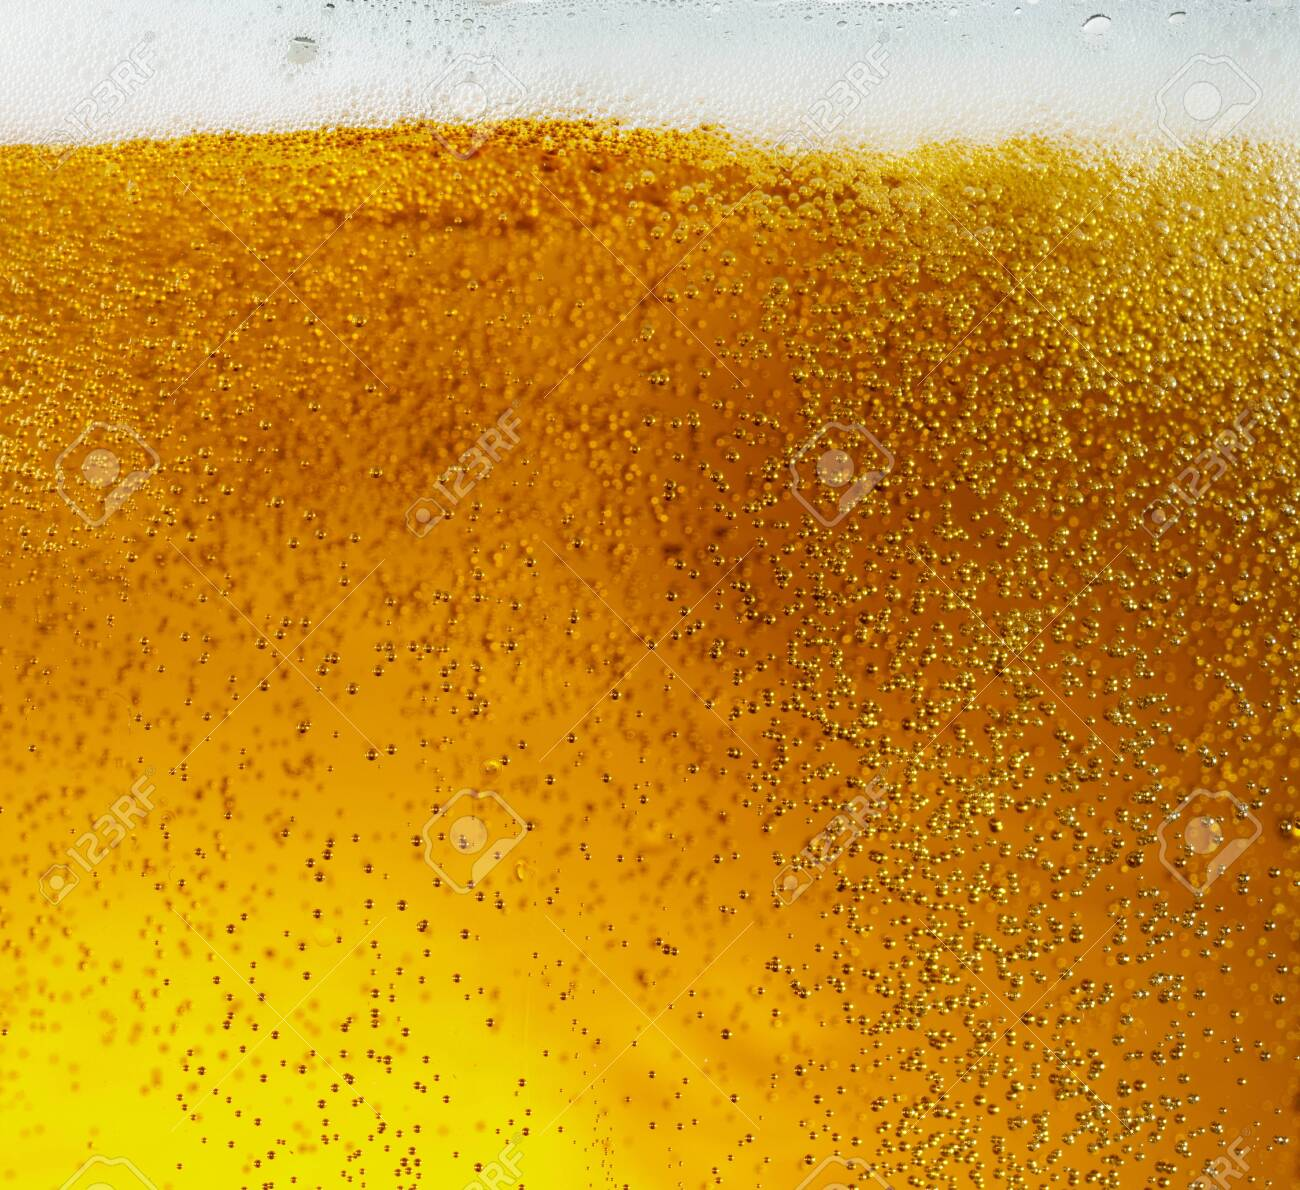 Close up view of floating bubbles in light golden colored beer - 124799651